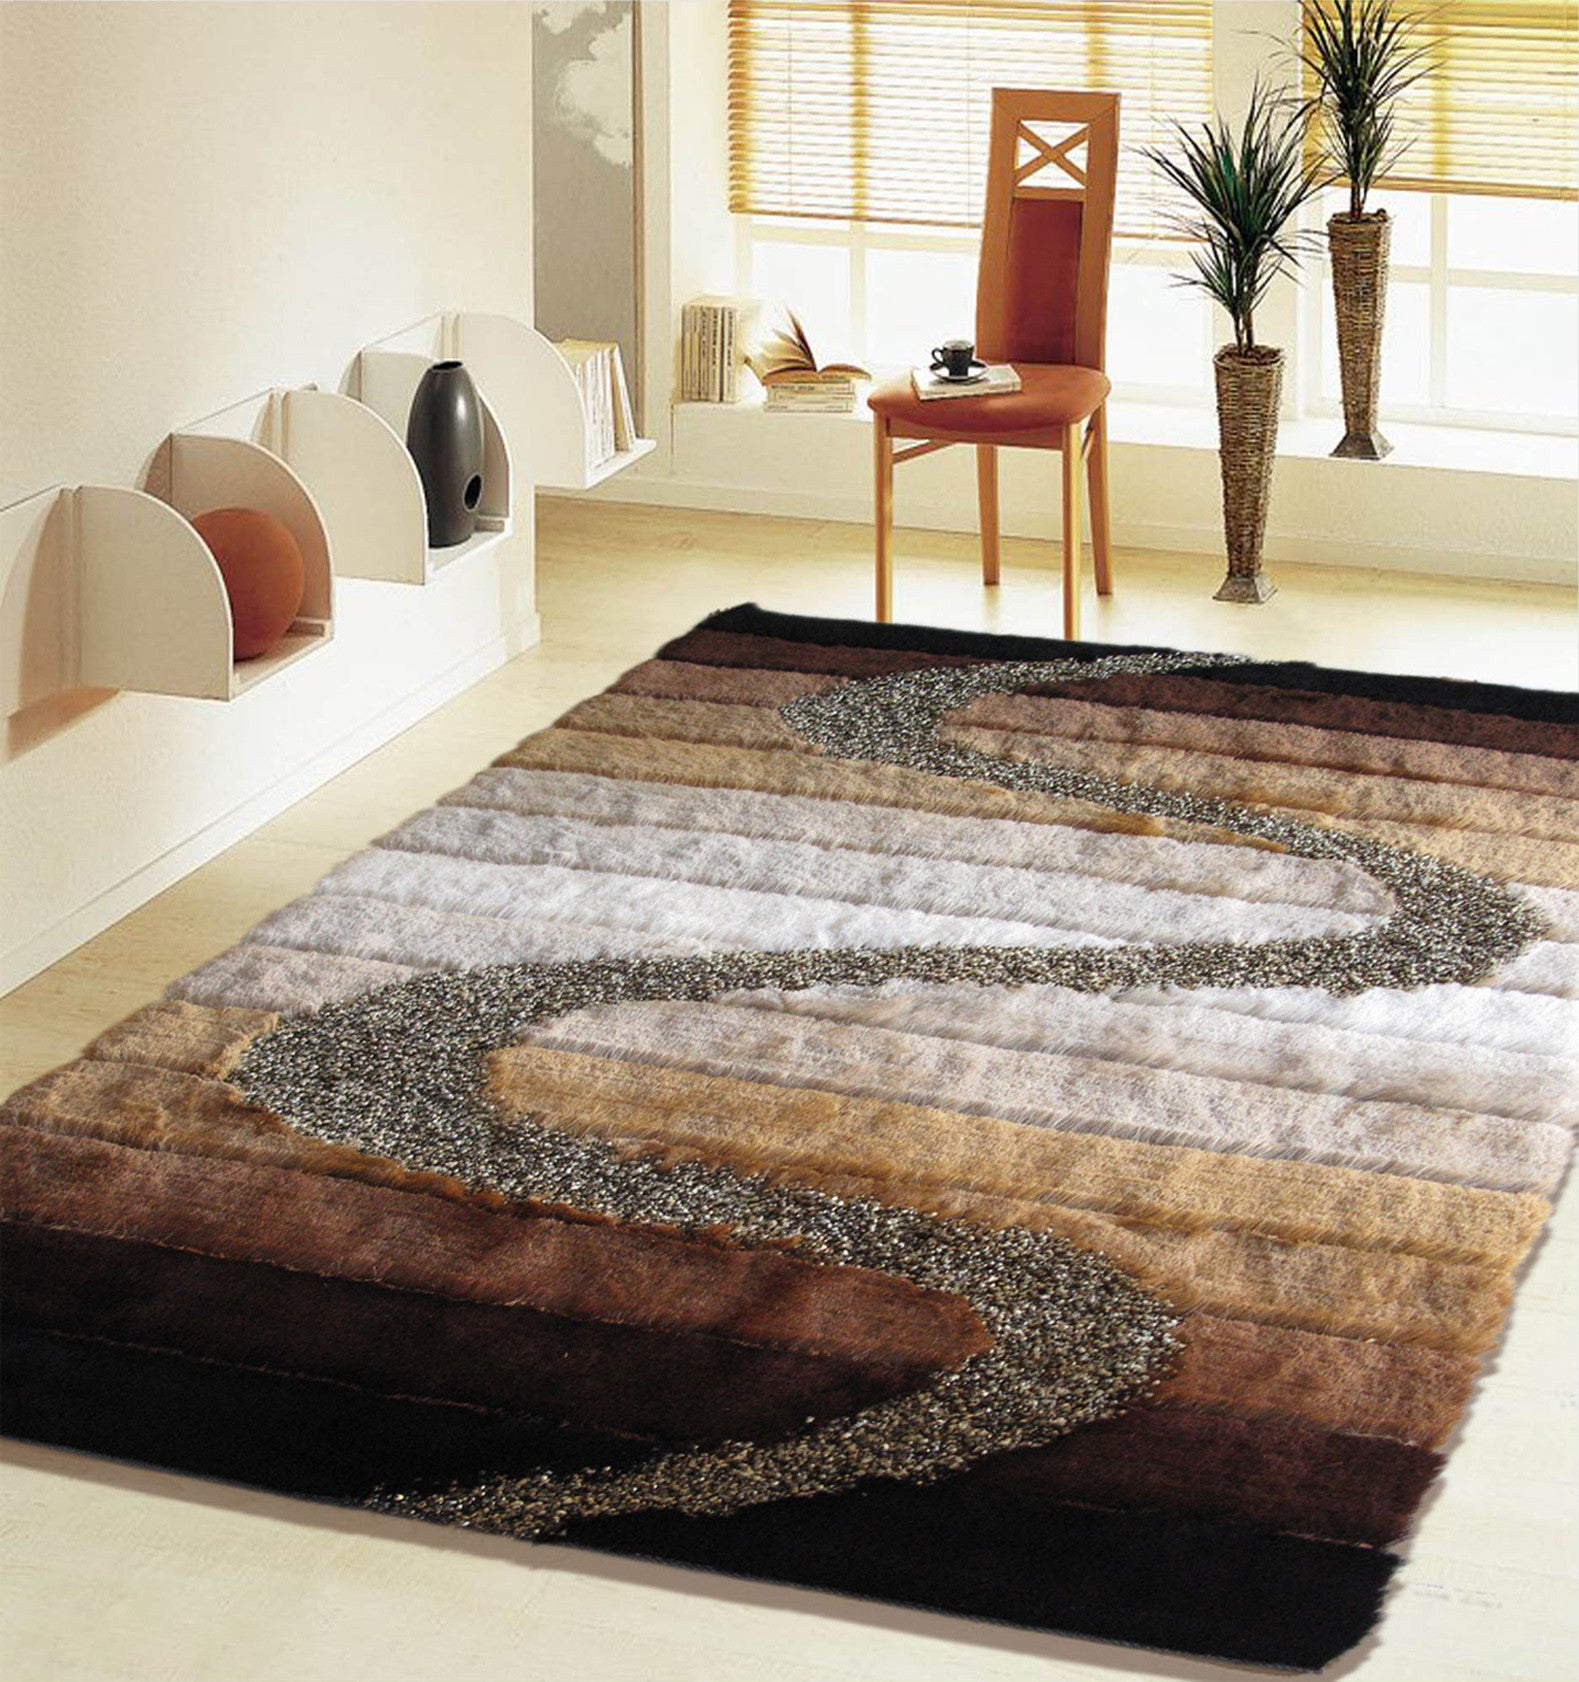 3 Piece Set | SHAG BROWN BEIGE BLACK GOLD HANDMADE RUG , 3 Piece ...